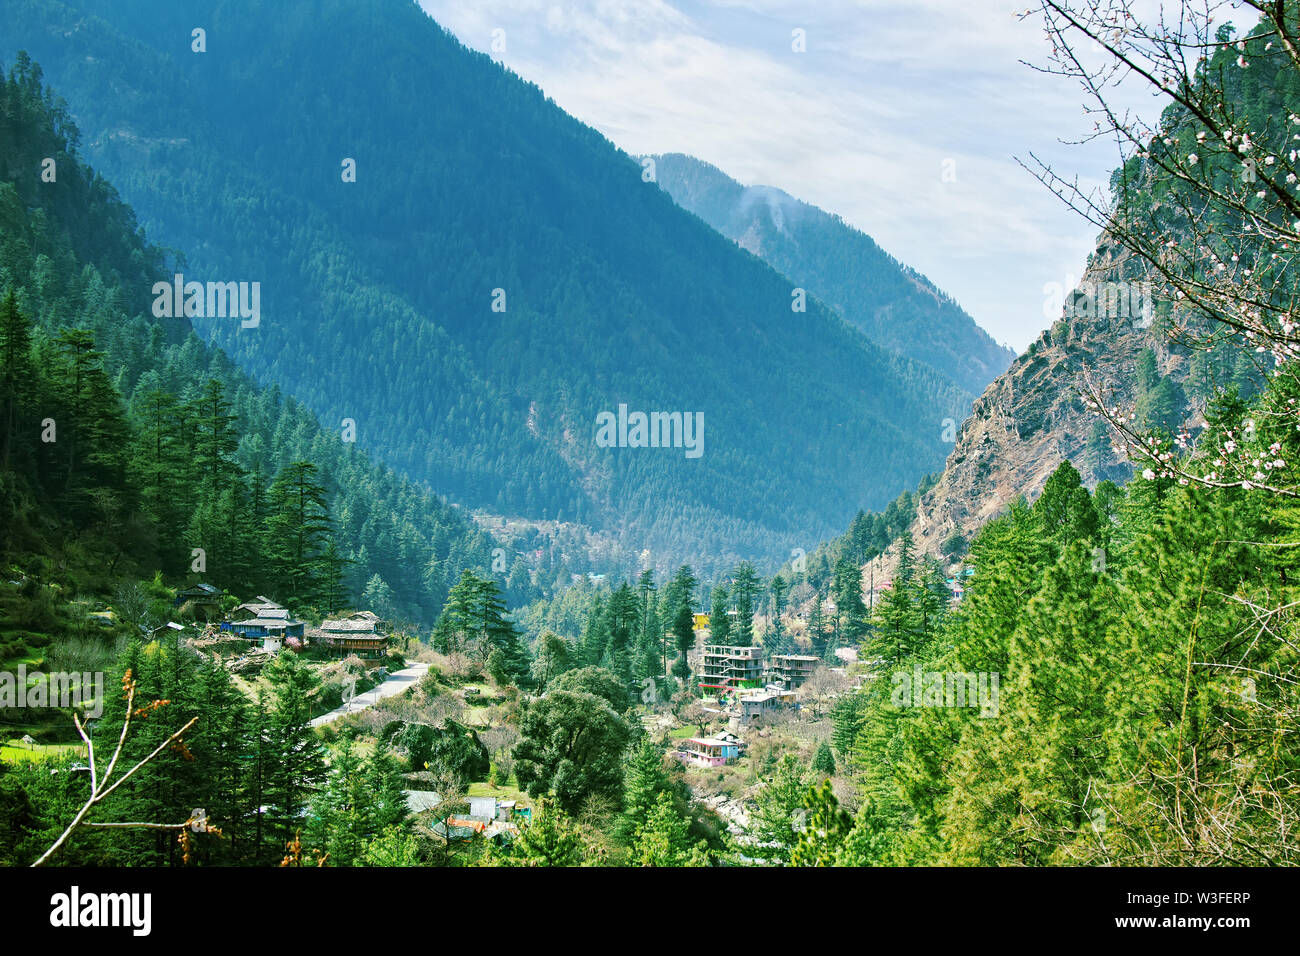 Home of the highlanders with terraces in the valley of the river Parvati, Shingles are made of slate. India - Stock Image